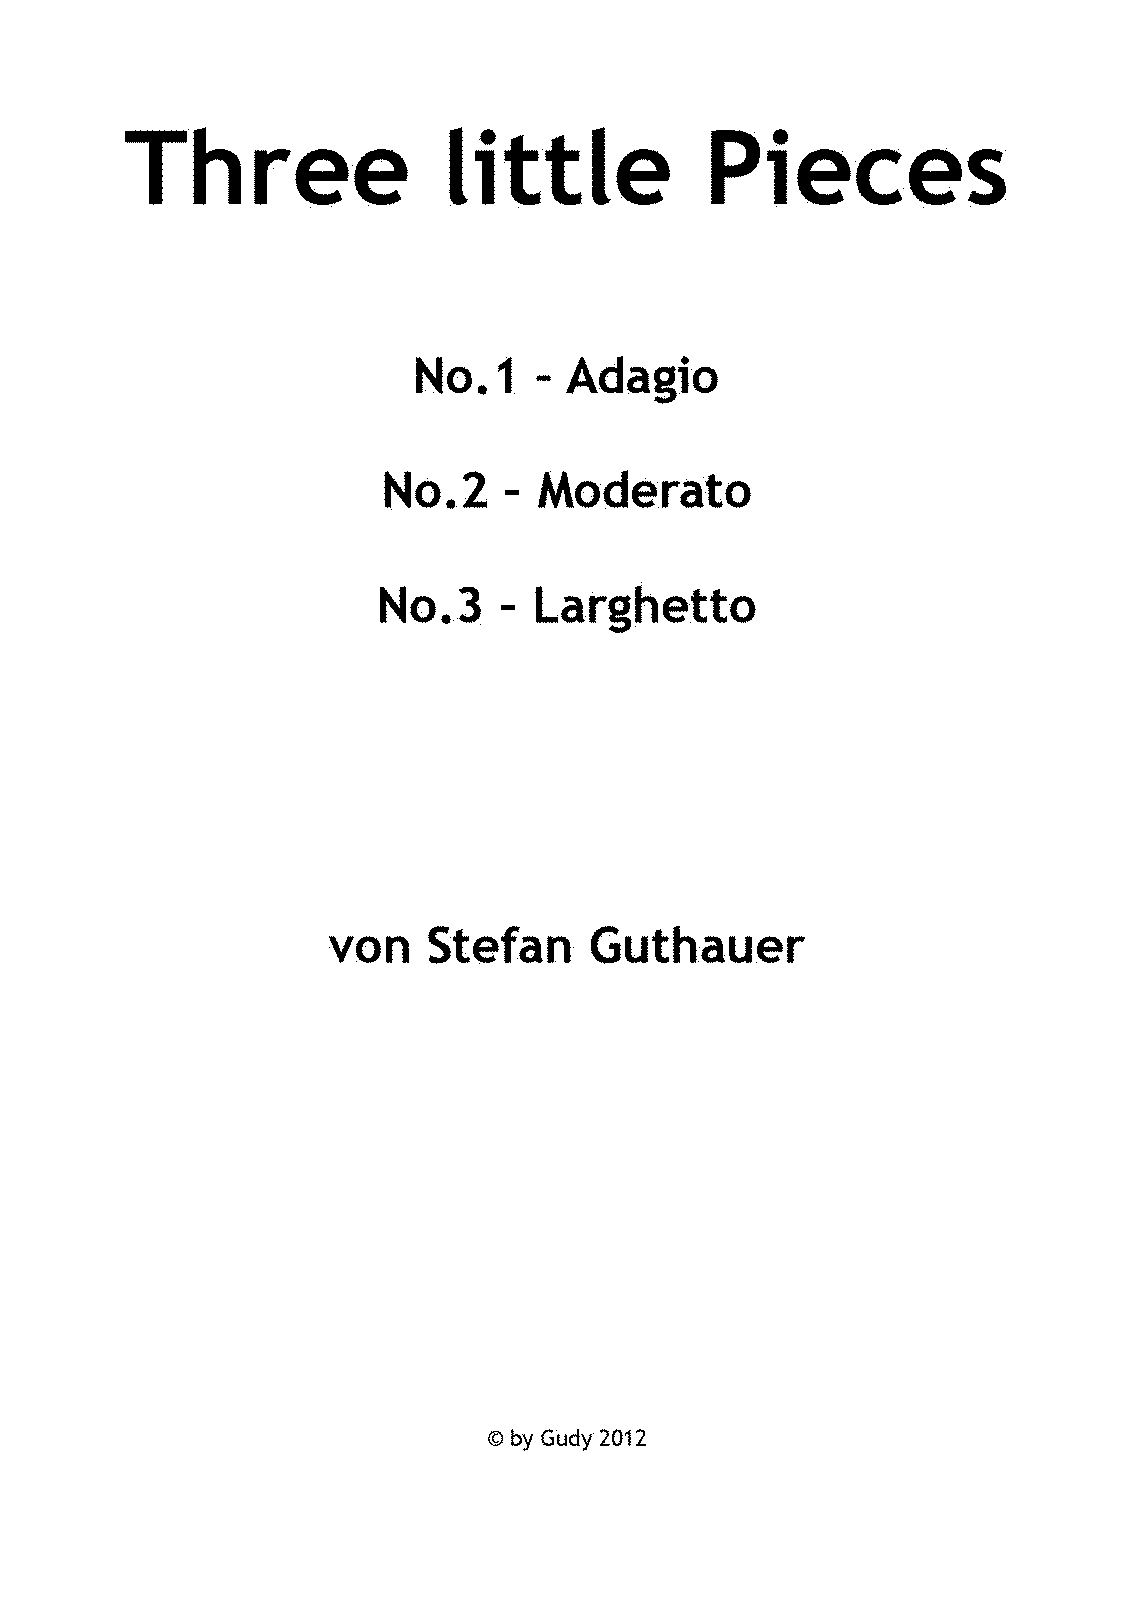 PMLP484006-Stefan Guthauer - Three little Pieces (Gitarre).pdf